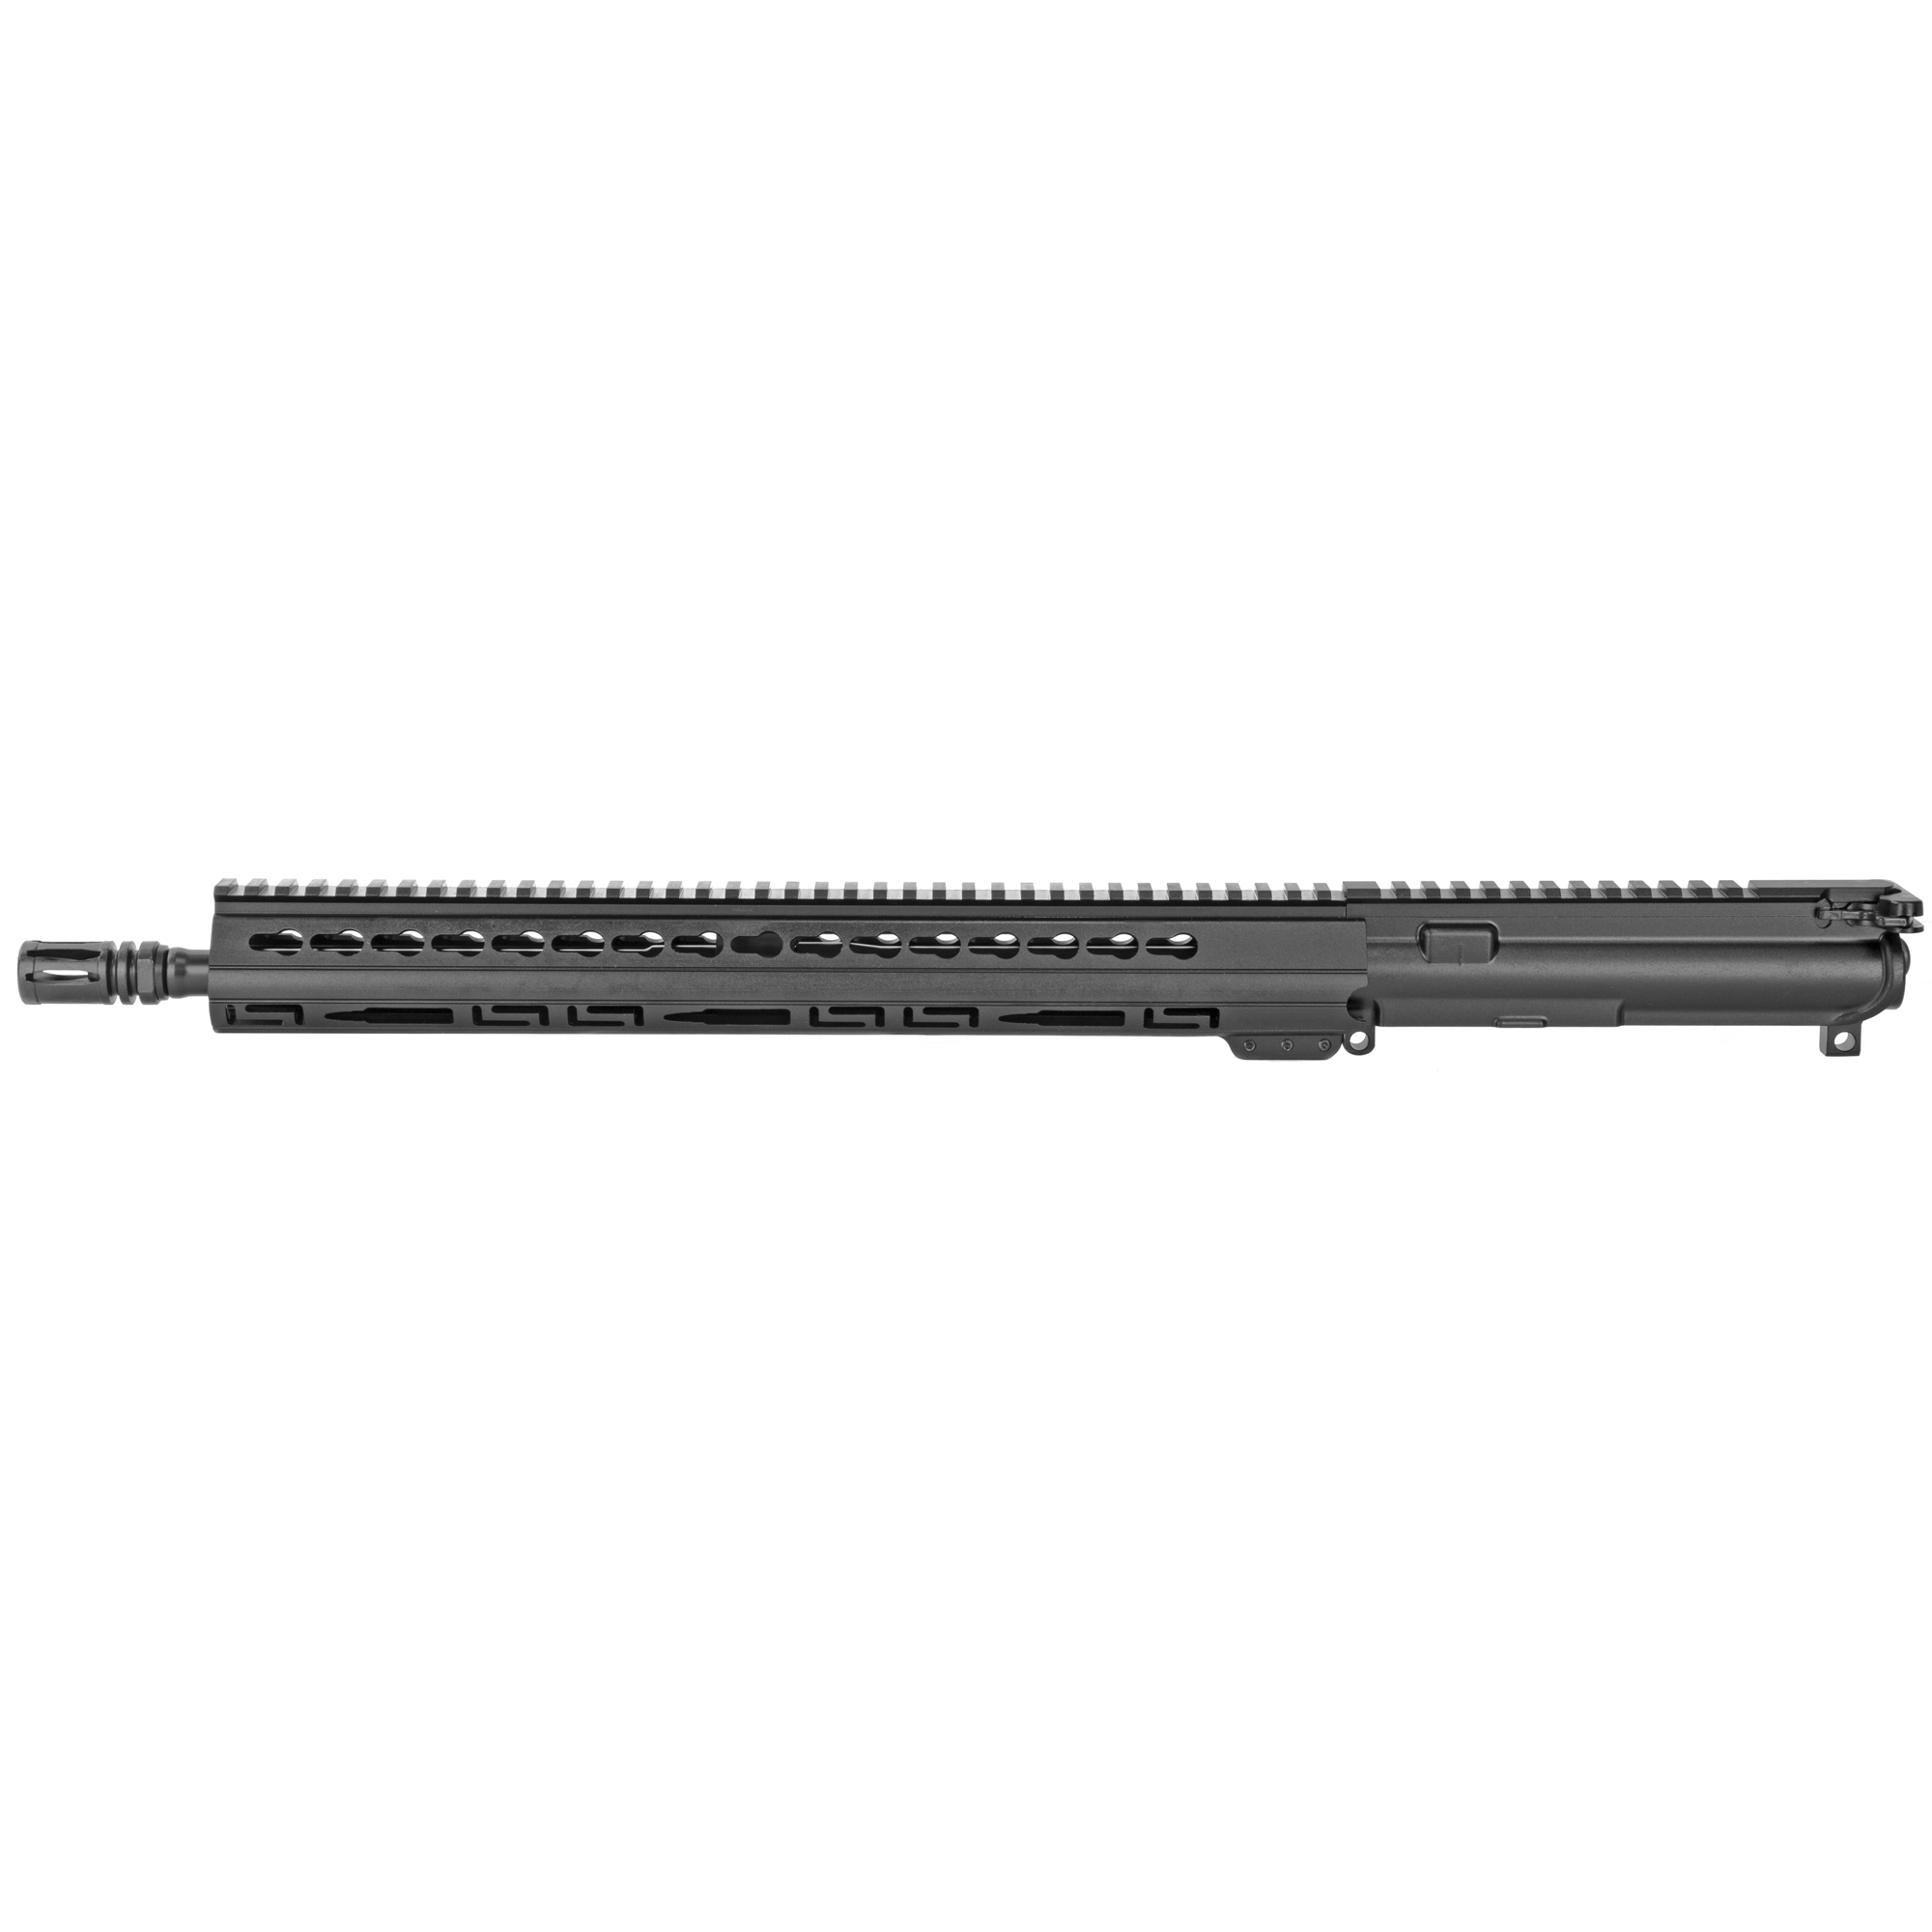 "The Luth-AR 16"" Lightweight Complete Upper Barrel Assembly Starts with a 16"""" 5.56mm Lightweight barrel made from 4140 Chrome Molly with a 1-9"" twist mated to a A3 Flattop receiver which includes a bolt carrier"" charging handle"" forward assist and ejection port cover. The upper is then topped off with a lo-profile gas system and an ergonomic 15"" Palm Handguard(R) with KeyMod slots and a Picatinny top-rail."